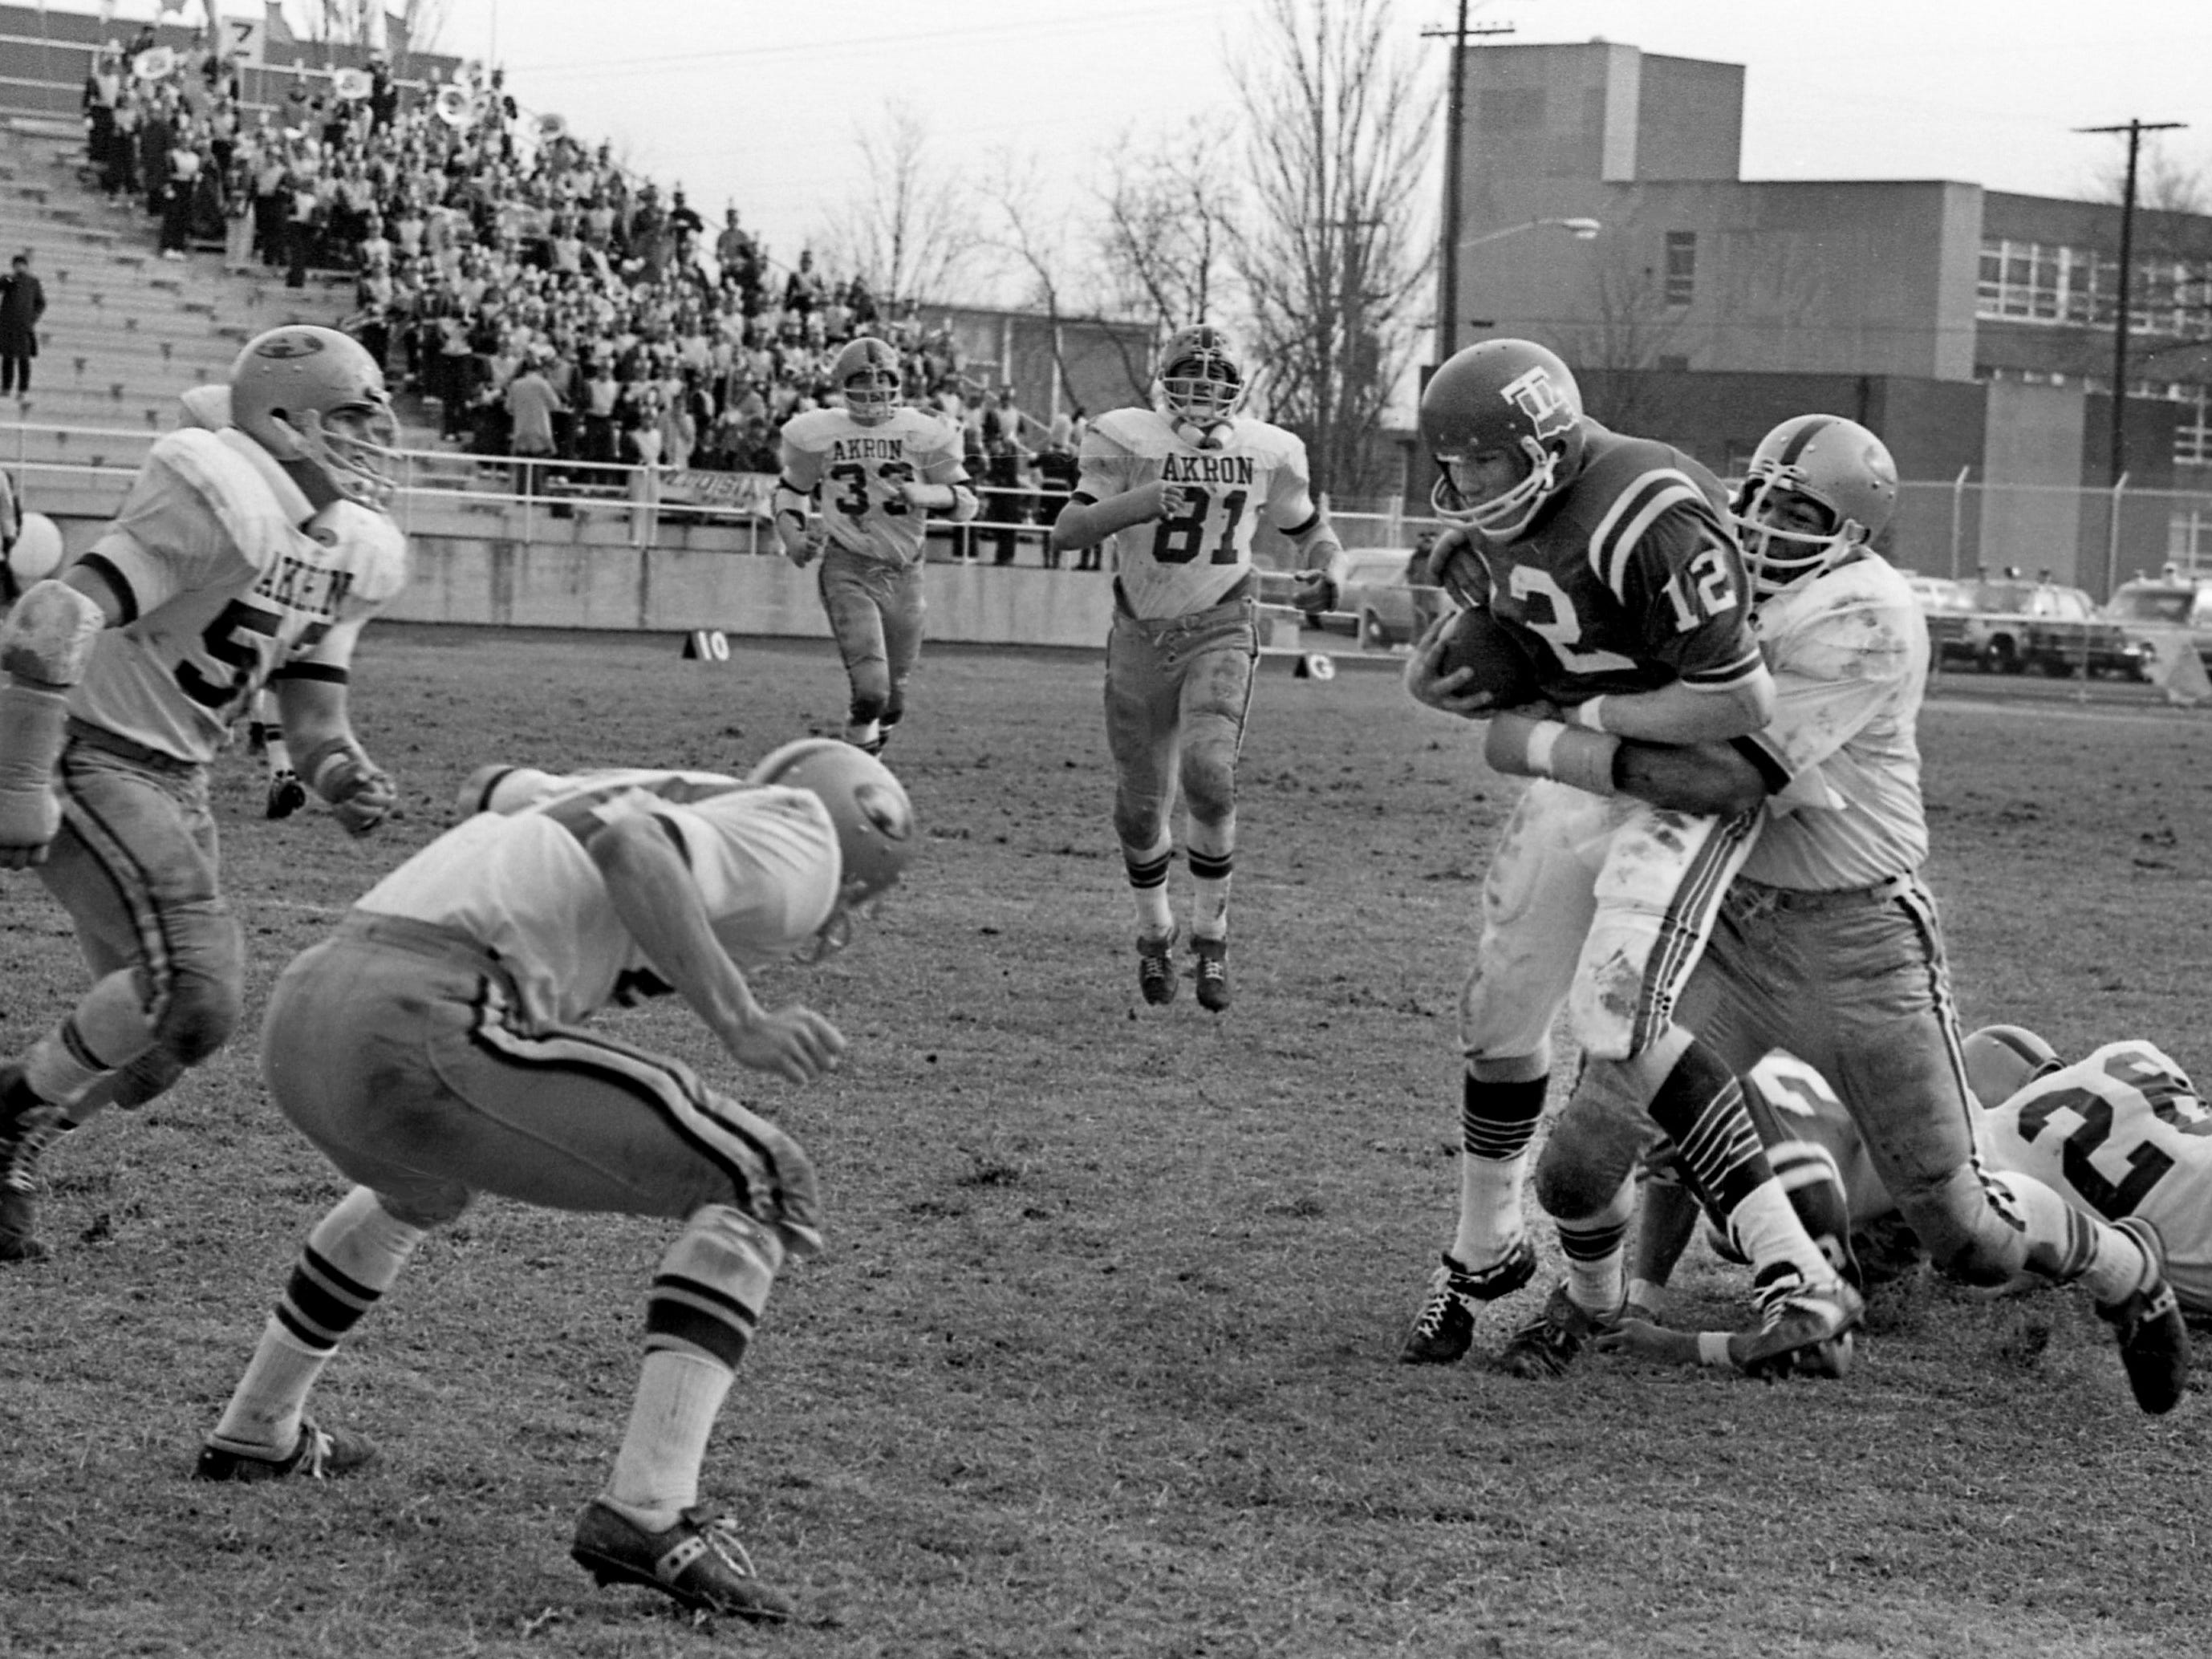 Louisiana Tech quarterback Terry Bradshaw (12) is surrounded by a whole group of Akron defenders as he leads his team to a 33-13 victory in the fifth annual Grantland Rice Bowl at Middle Tennessee State University on Dec. 14, 1968. Bradshaw passed for two touchdowns and ran in two more.